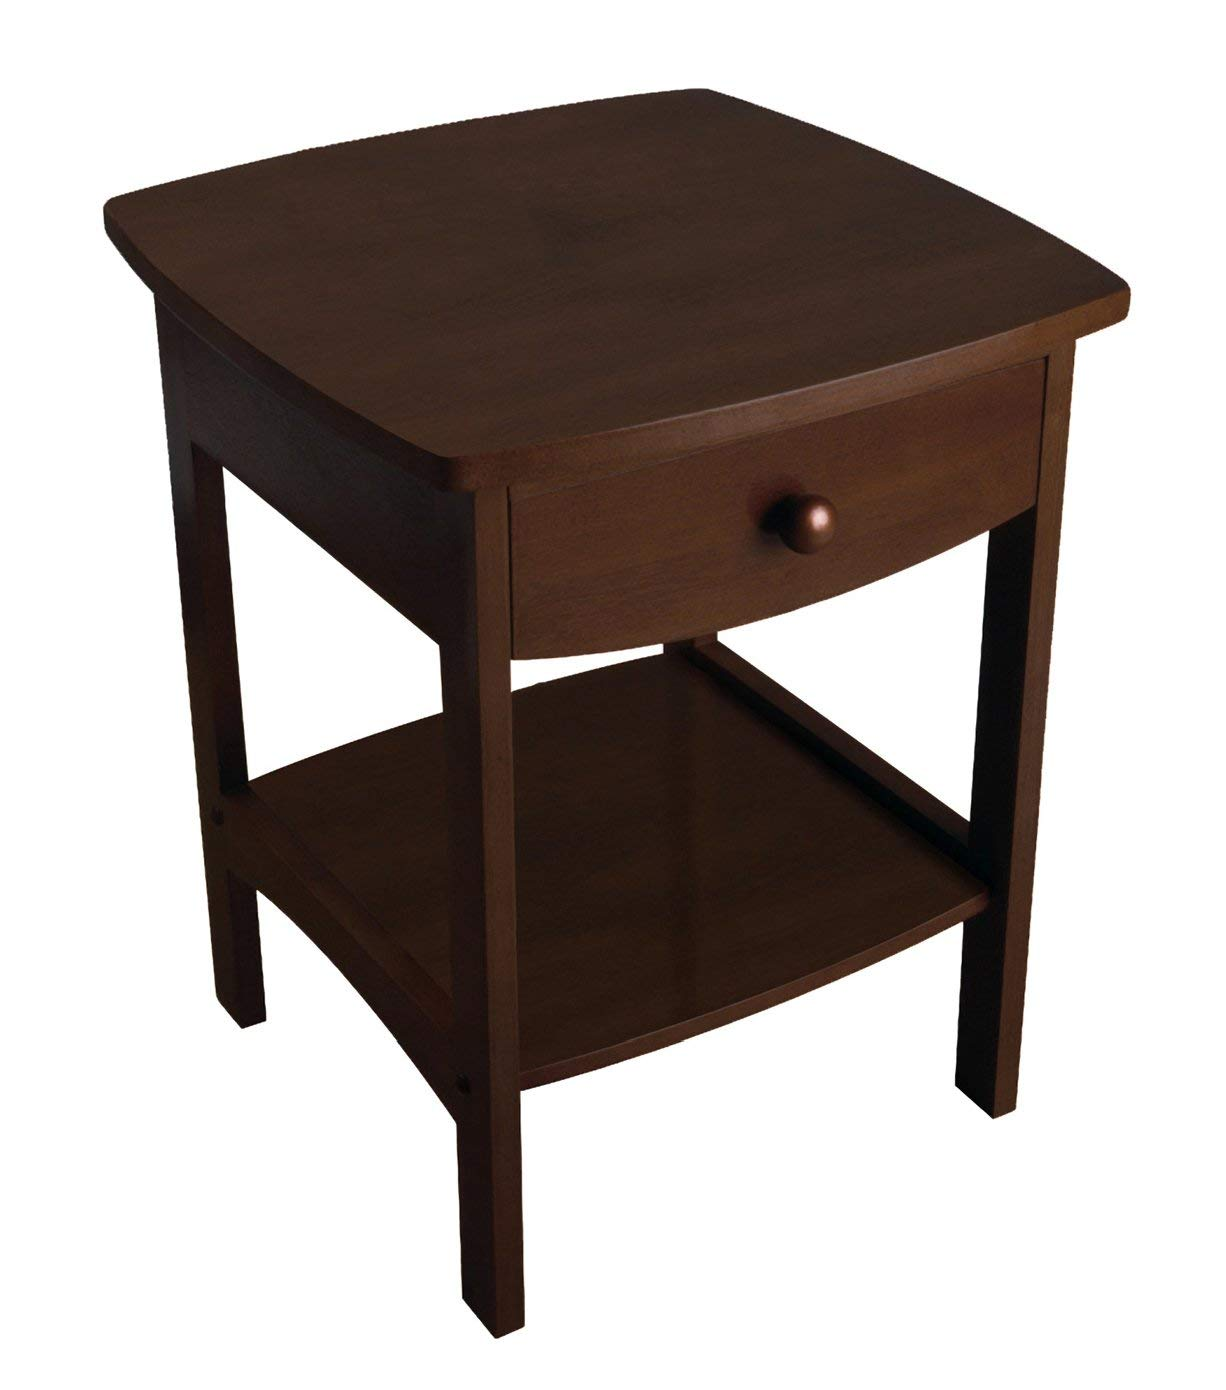 winsome wood claire accent table walnut kitchen eugene white dining pool furniture sets curry company red wingback chair decorative pieces ashley chairs light cherry end tables